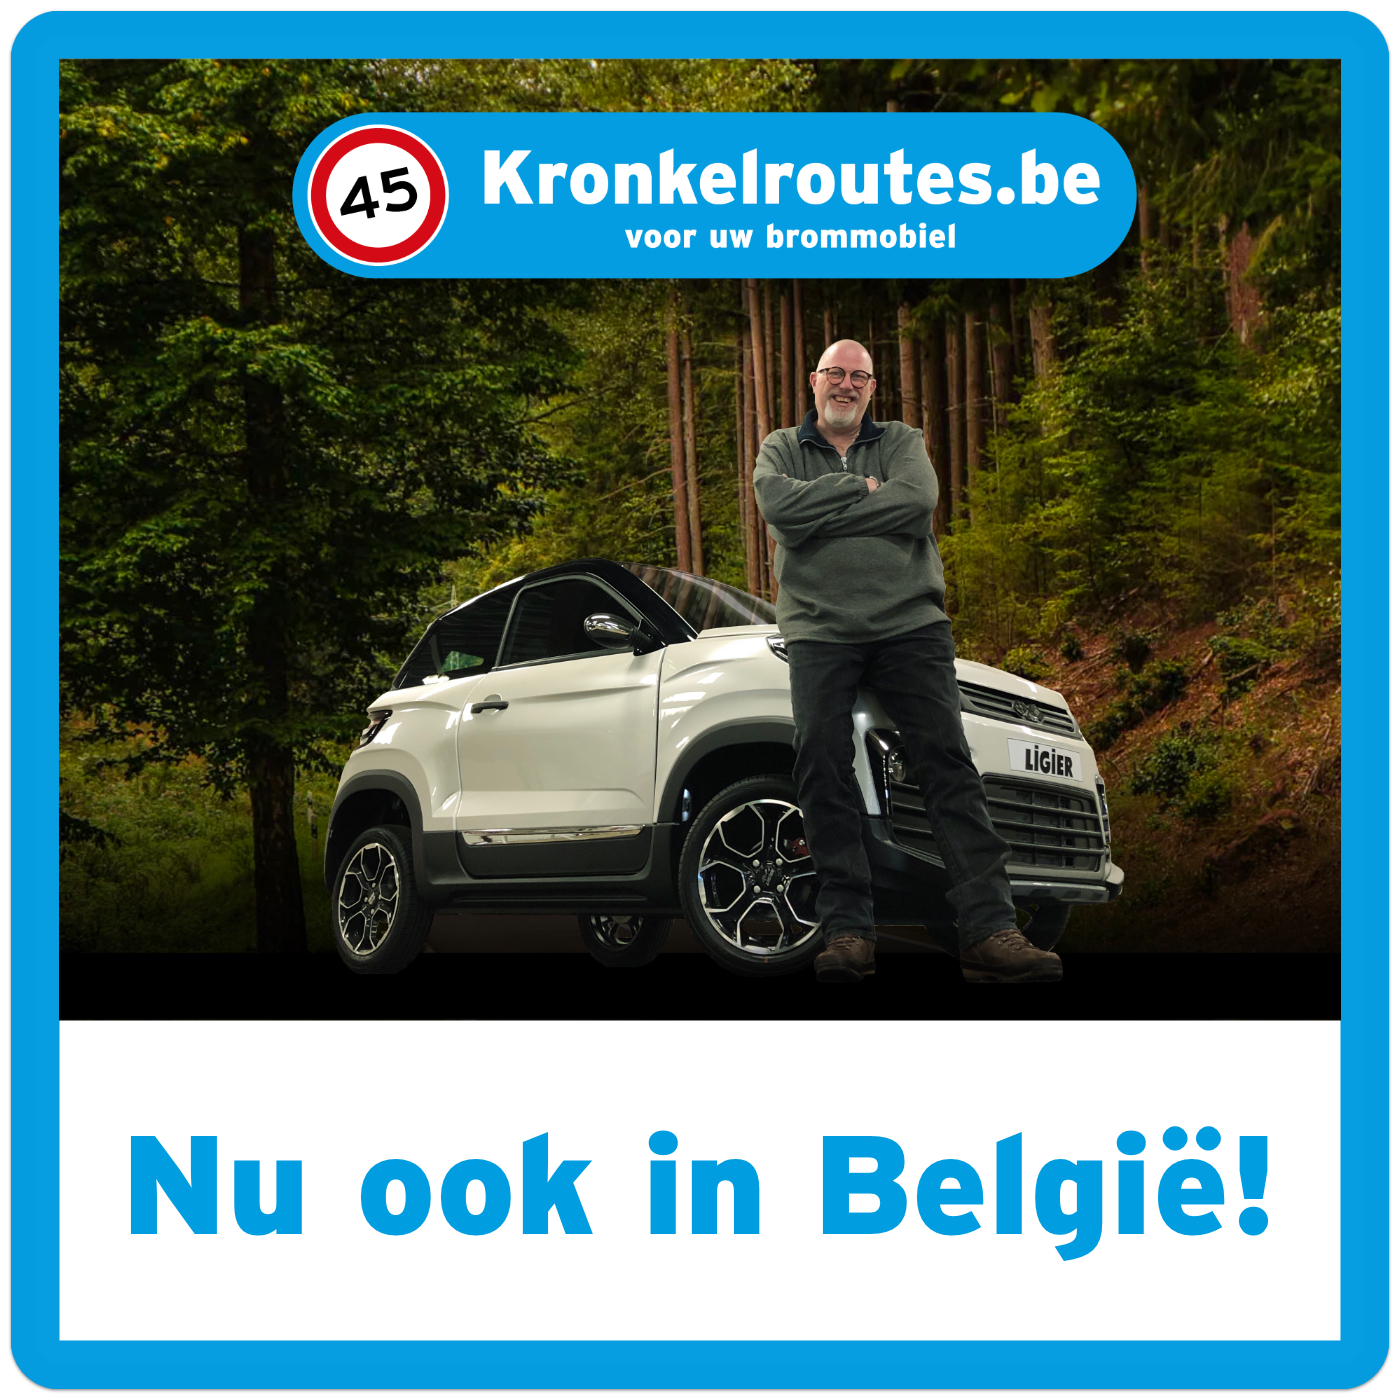 Kronkelroutes.be